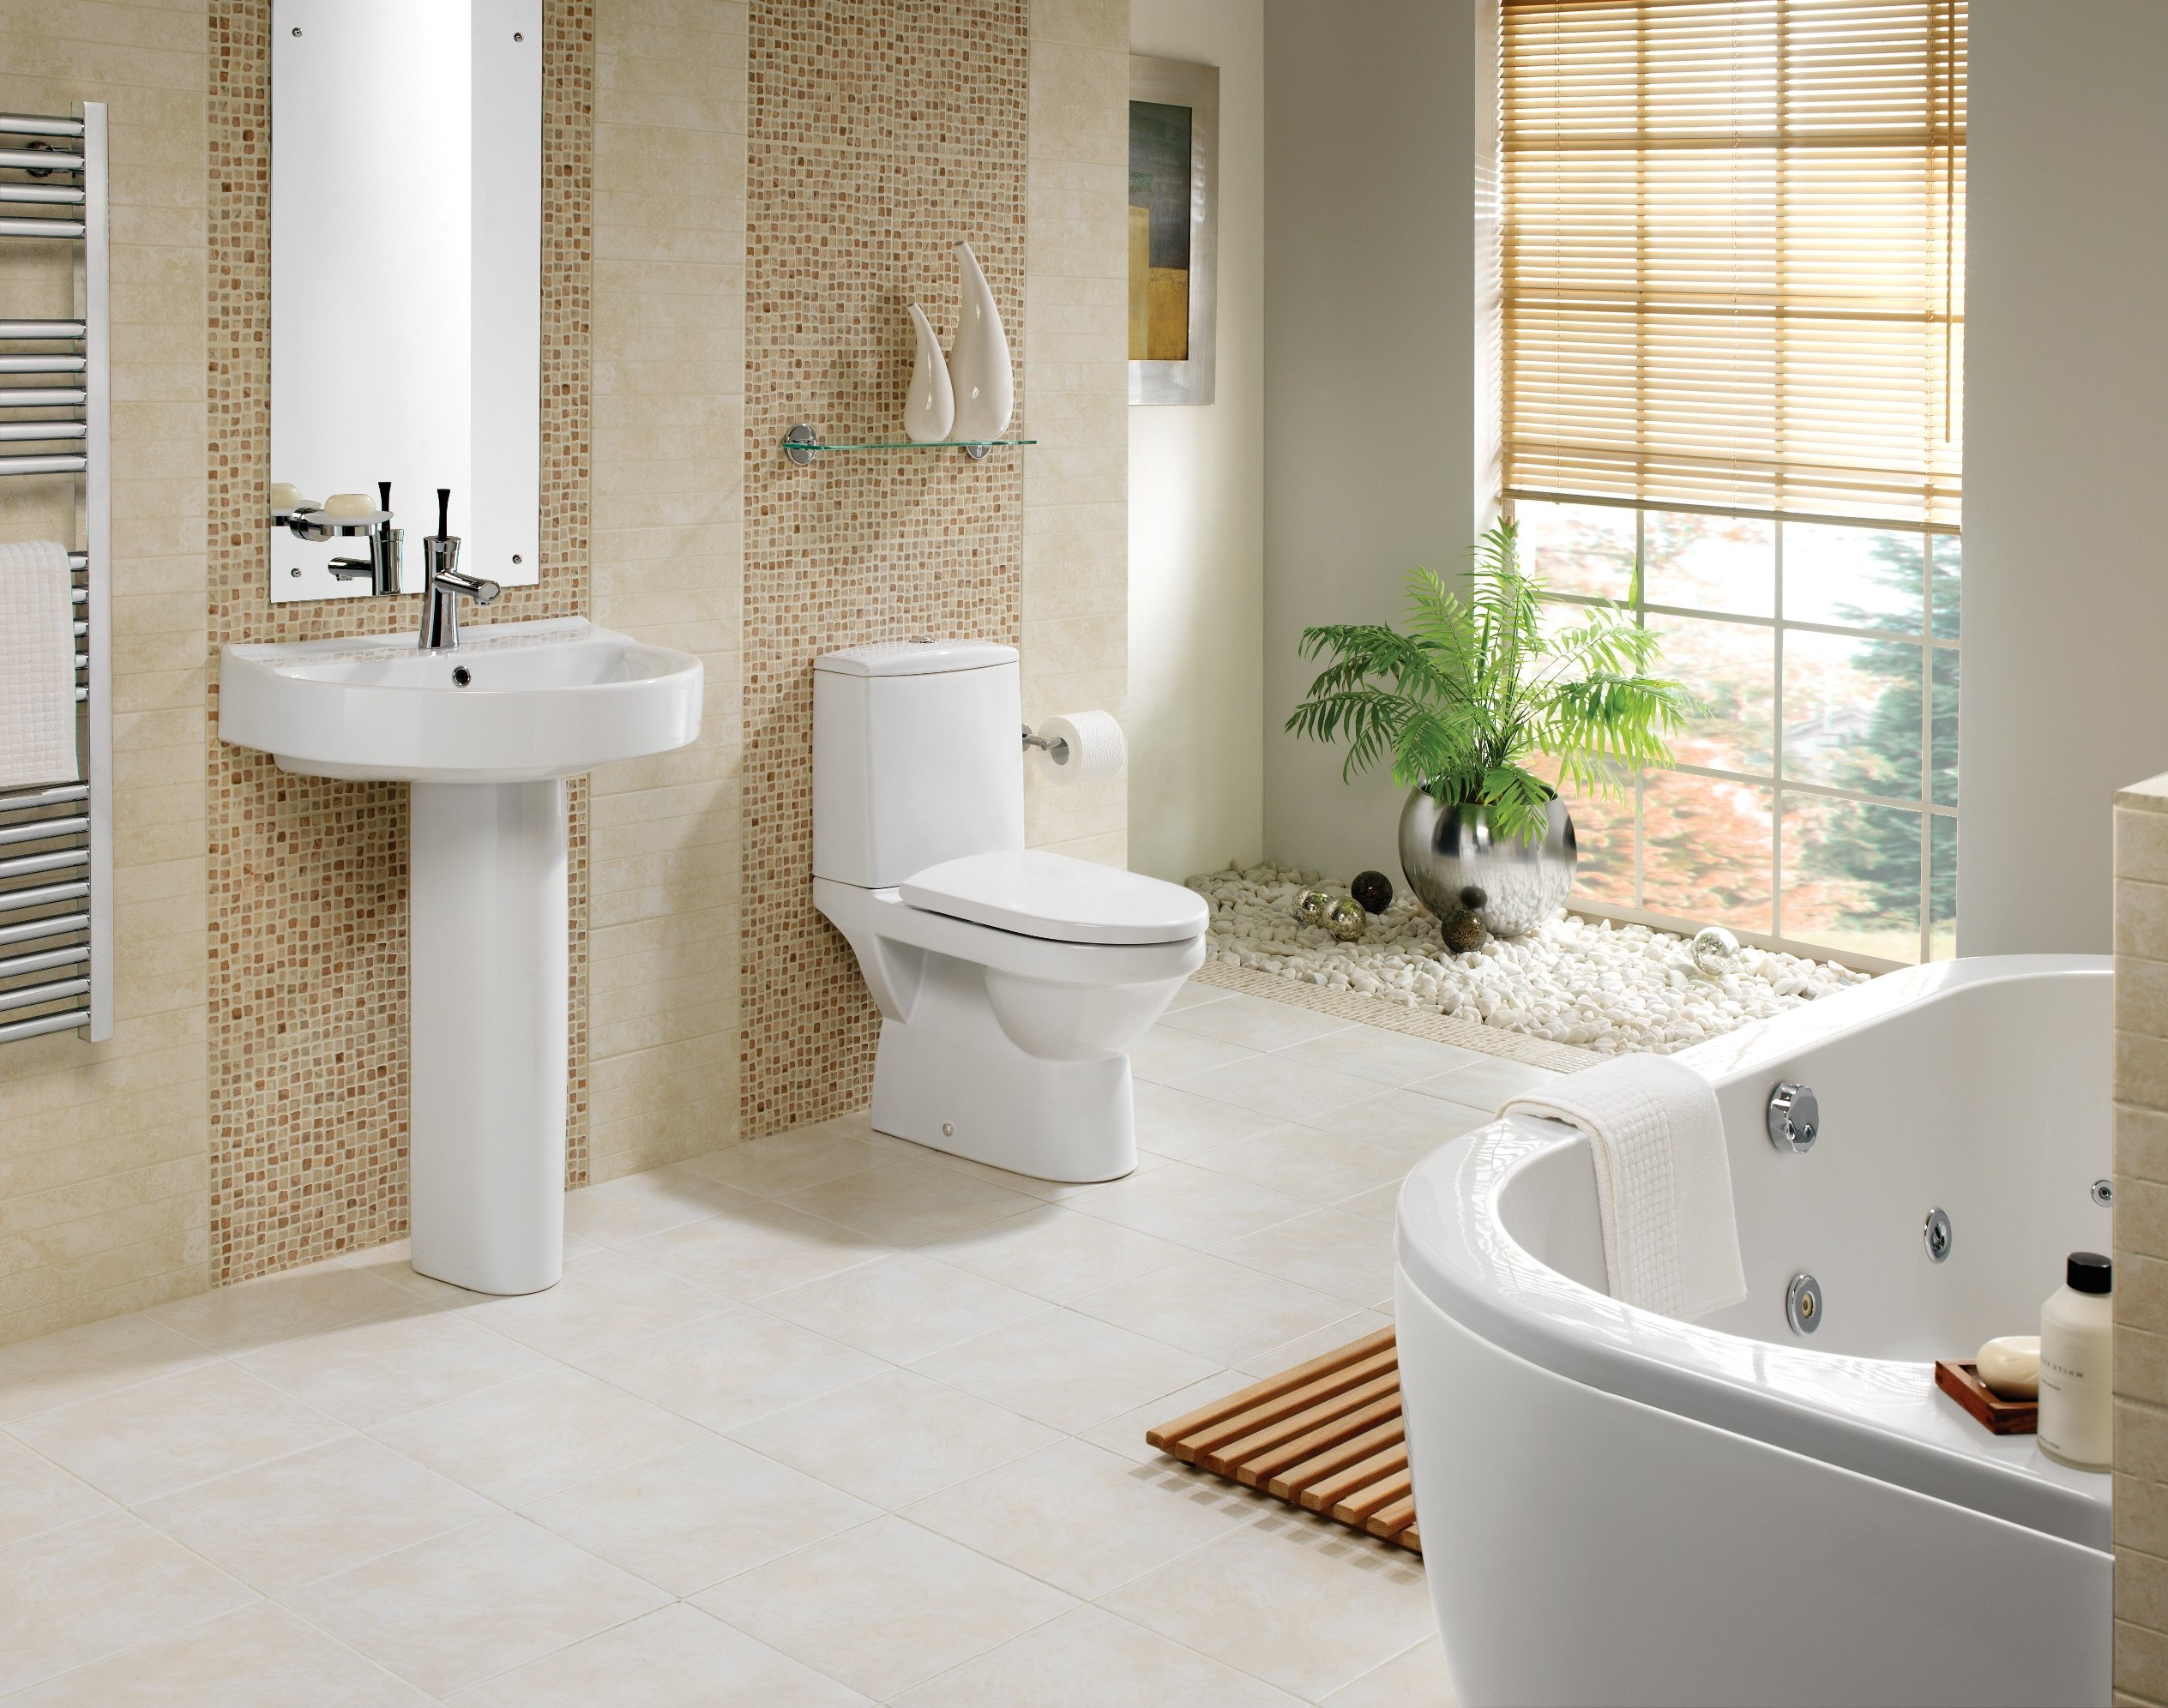 Living-Up-with-the-Modern-Bathroom-Design-50